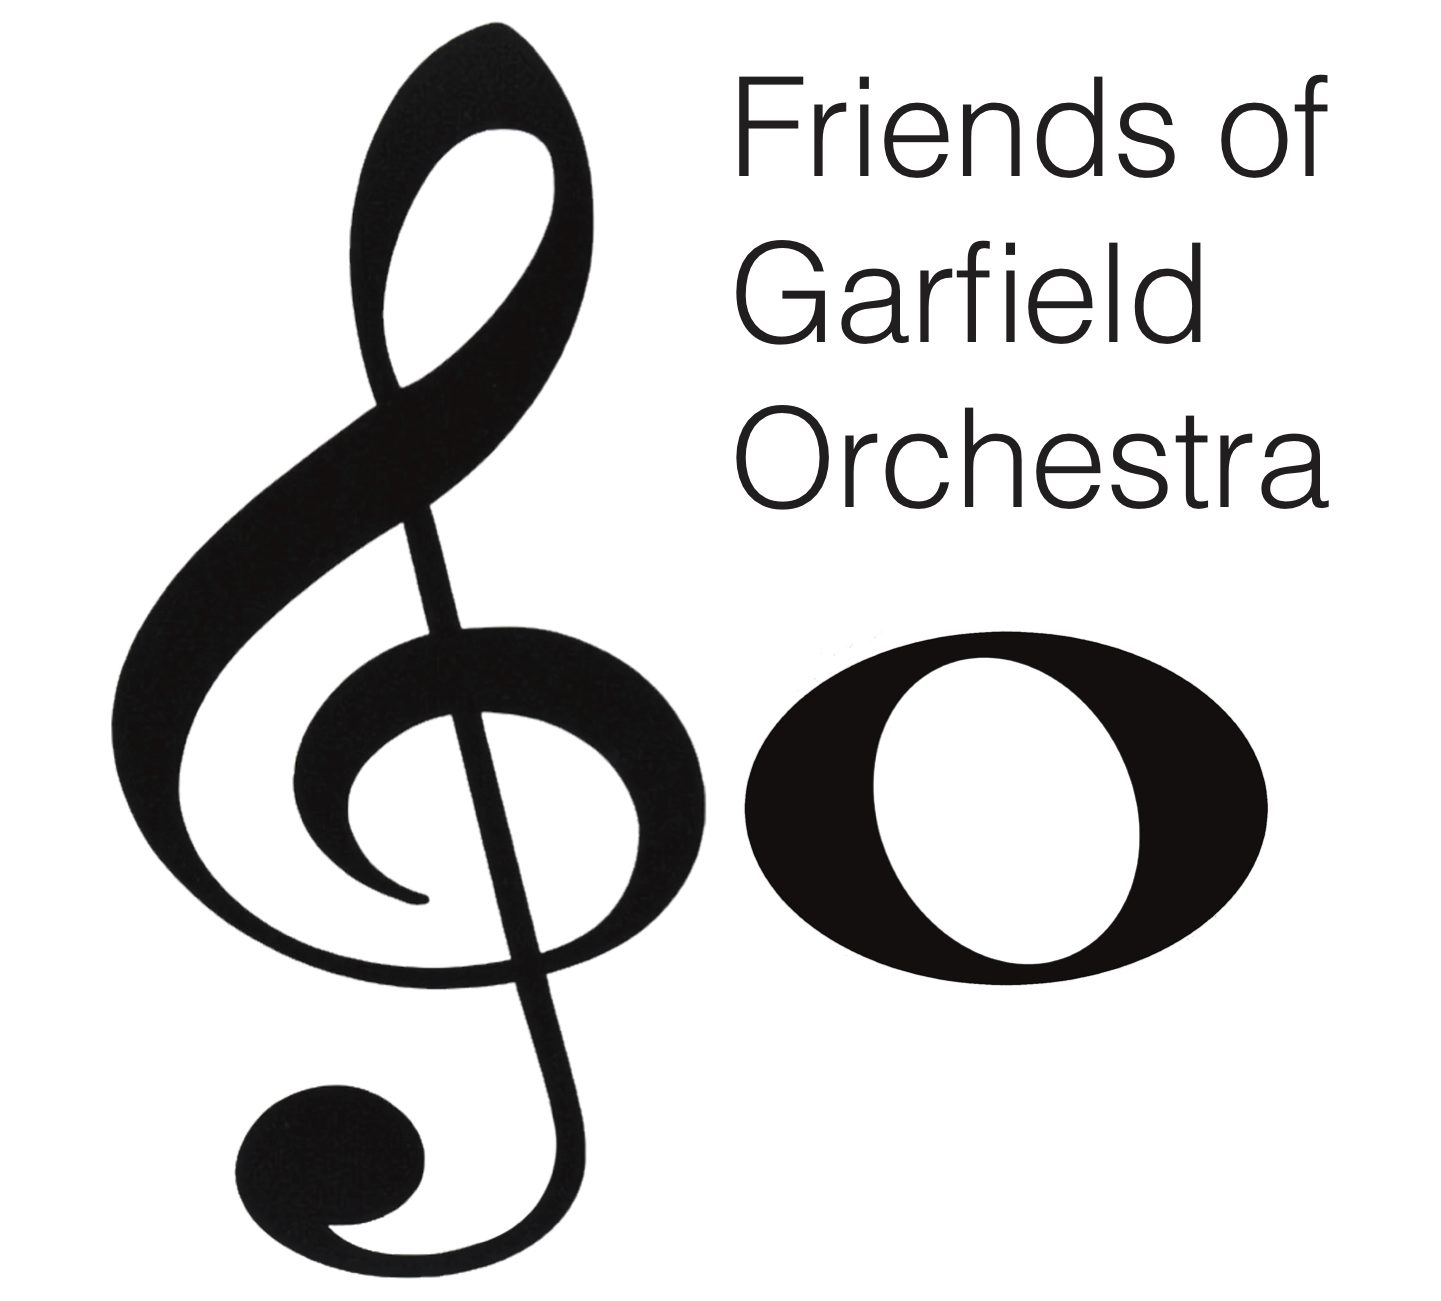 Friends of Garfield Orchestra